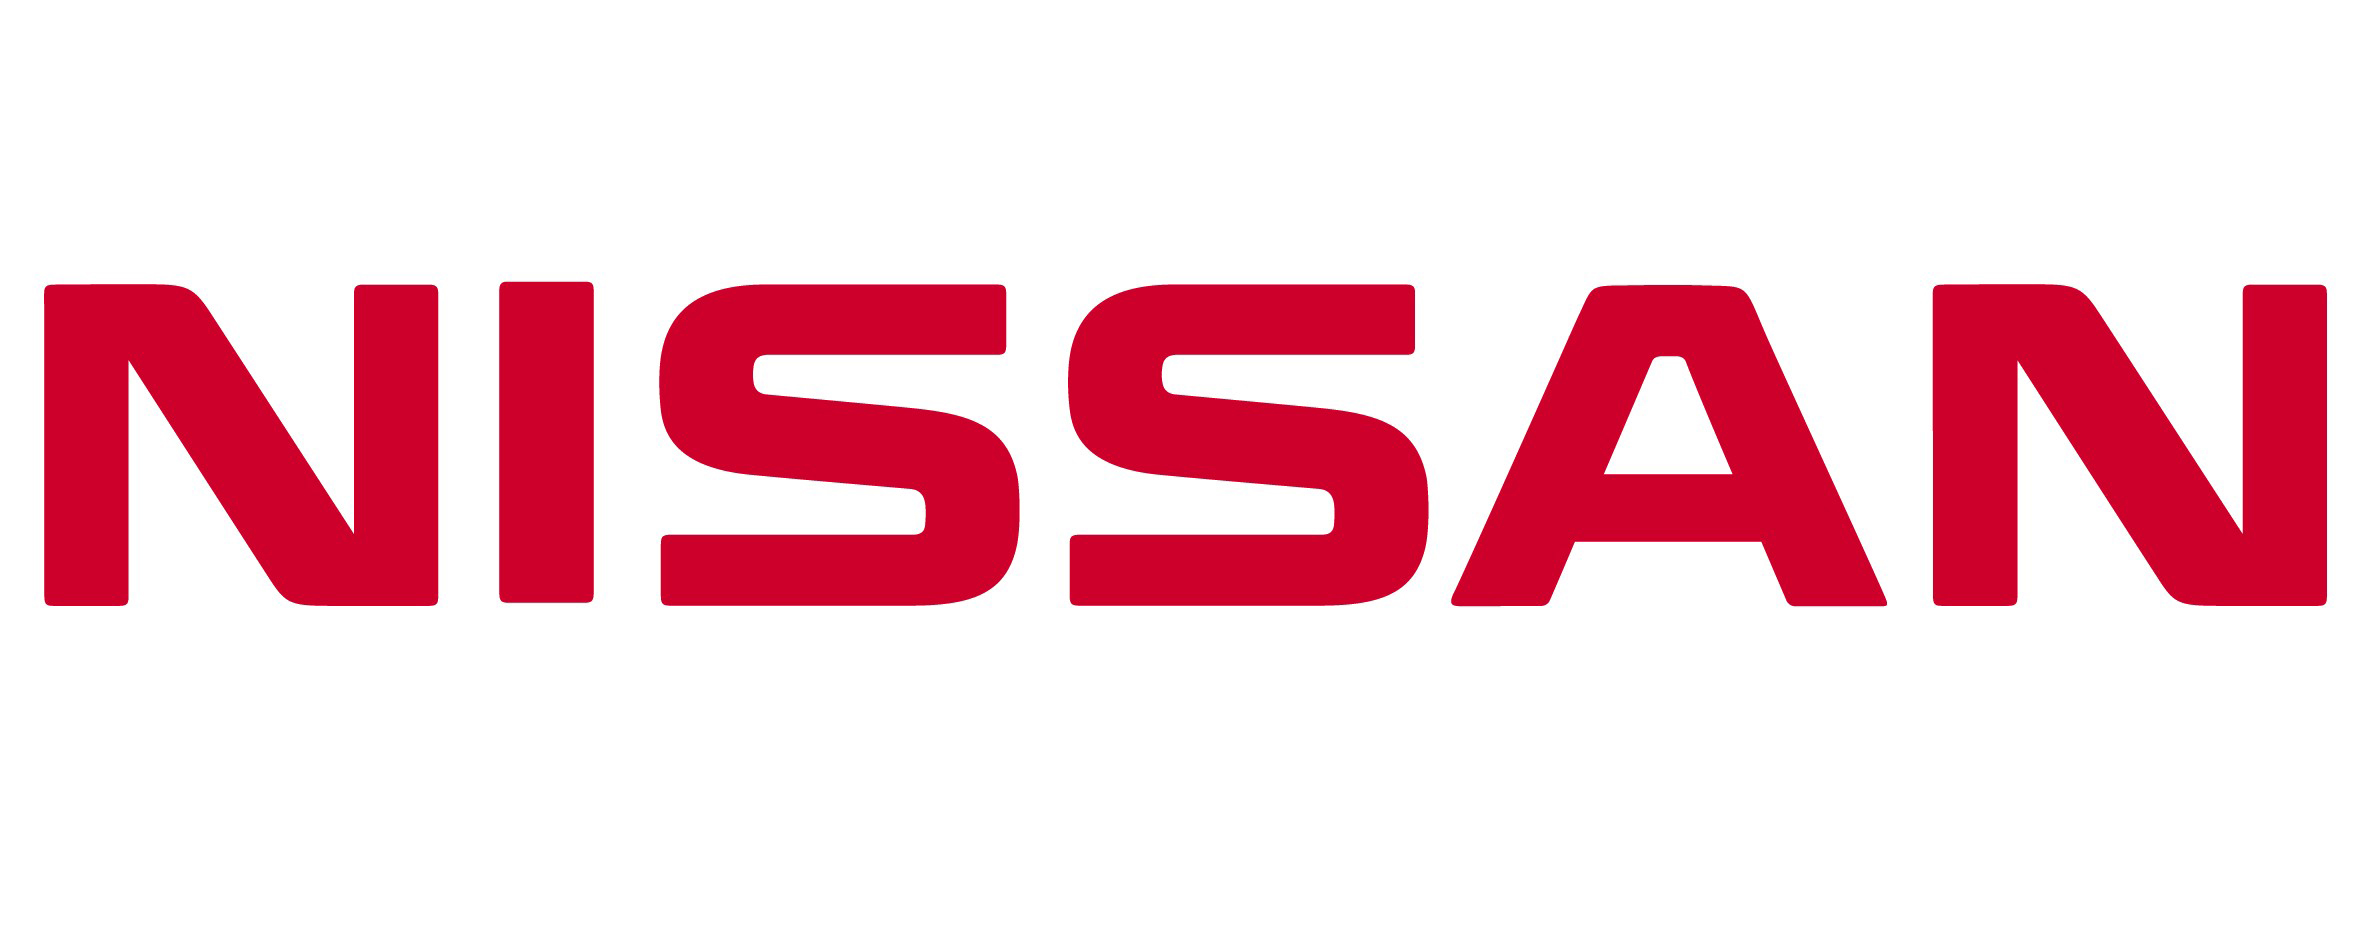 NISSAN Wordmark rgb